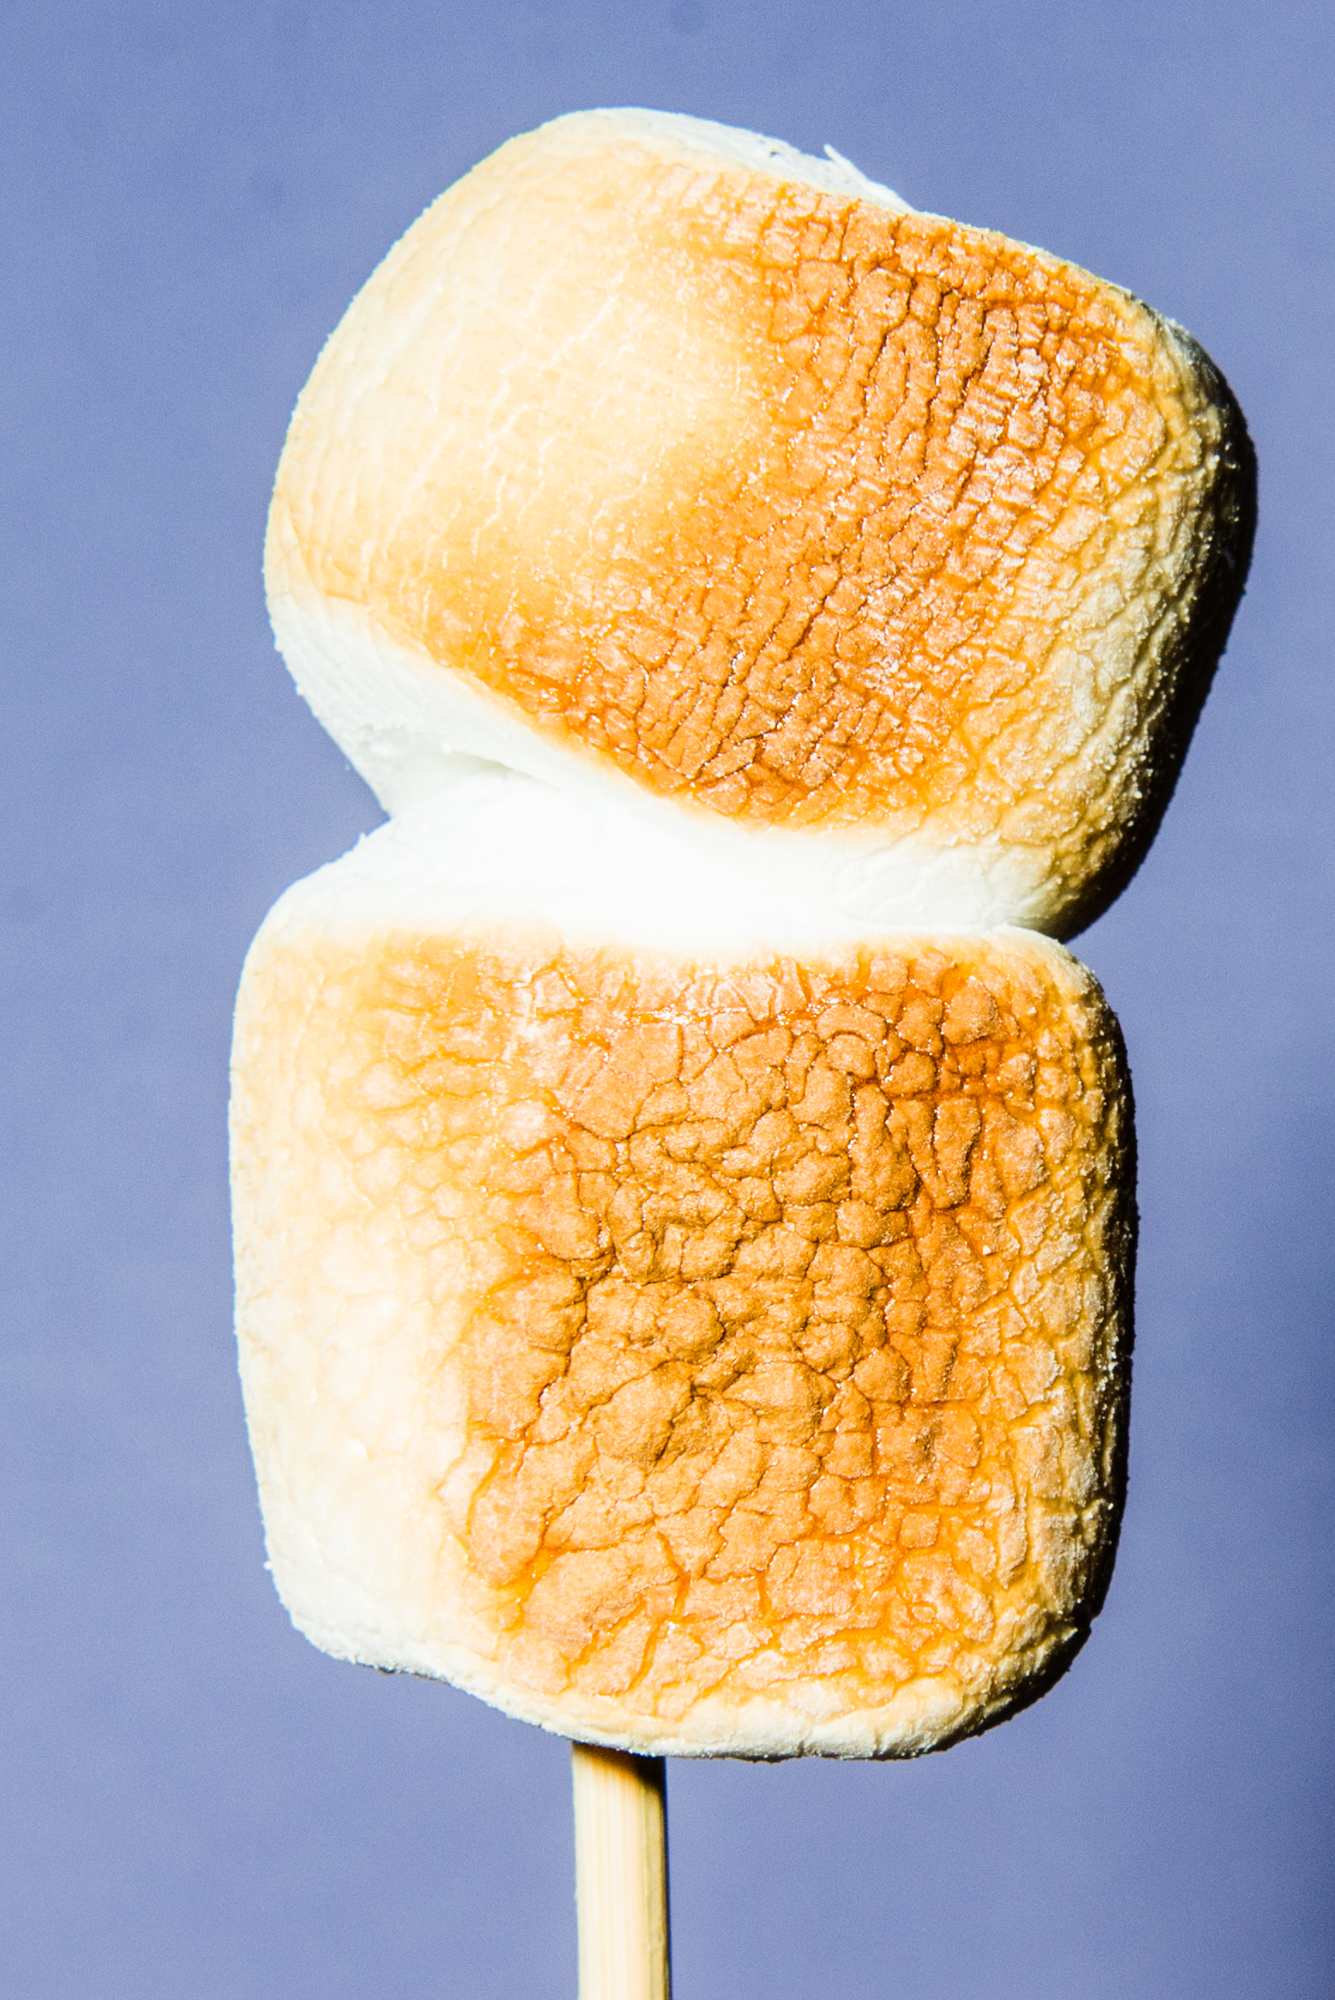 National S'Mores Day was last week, and it got us thinking - how simple and wonderful are these little treats? Is there a more perfect union of junk food quite like s'mores? (Photo: Chona Kasinger / Seattle Refined)